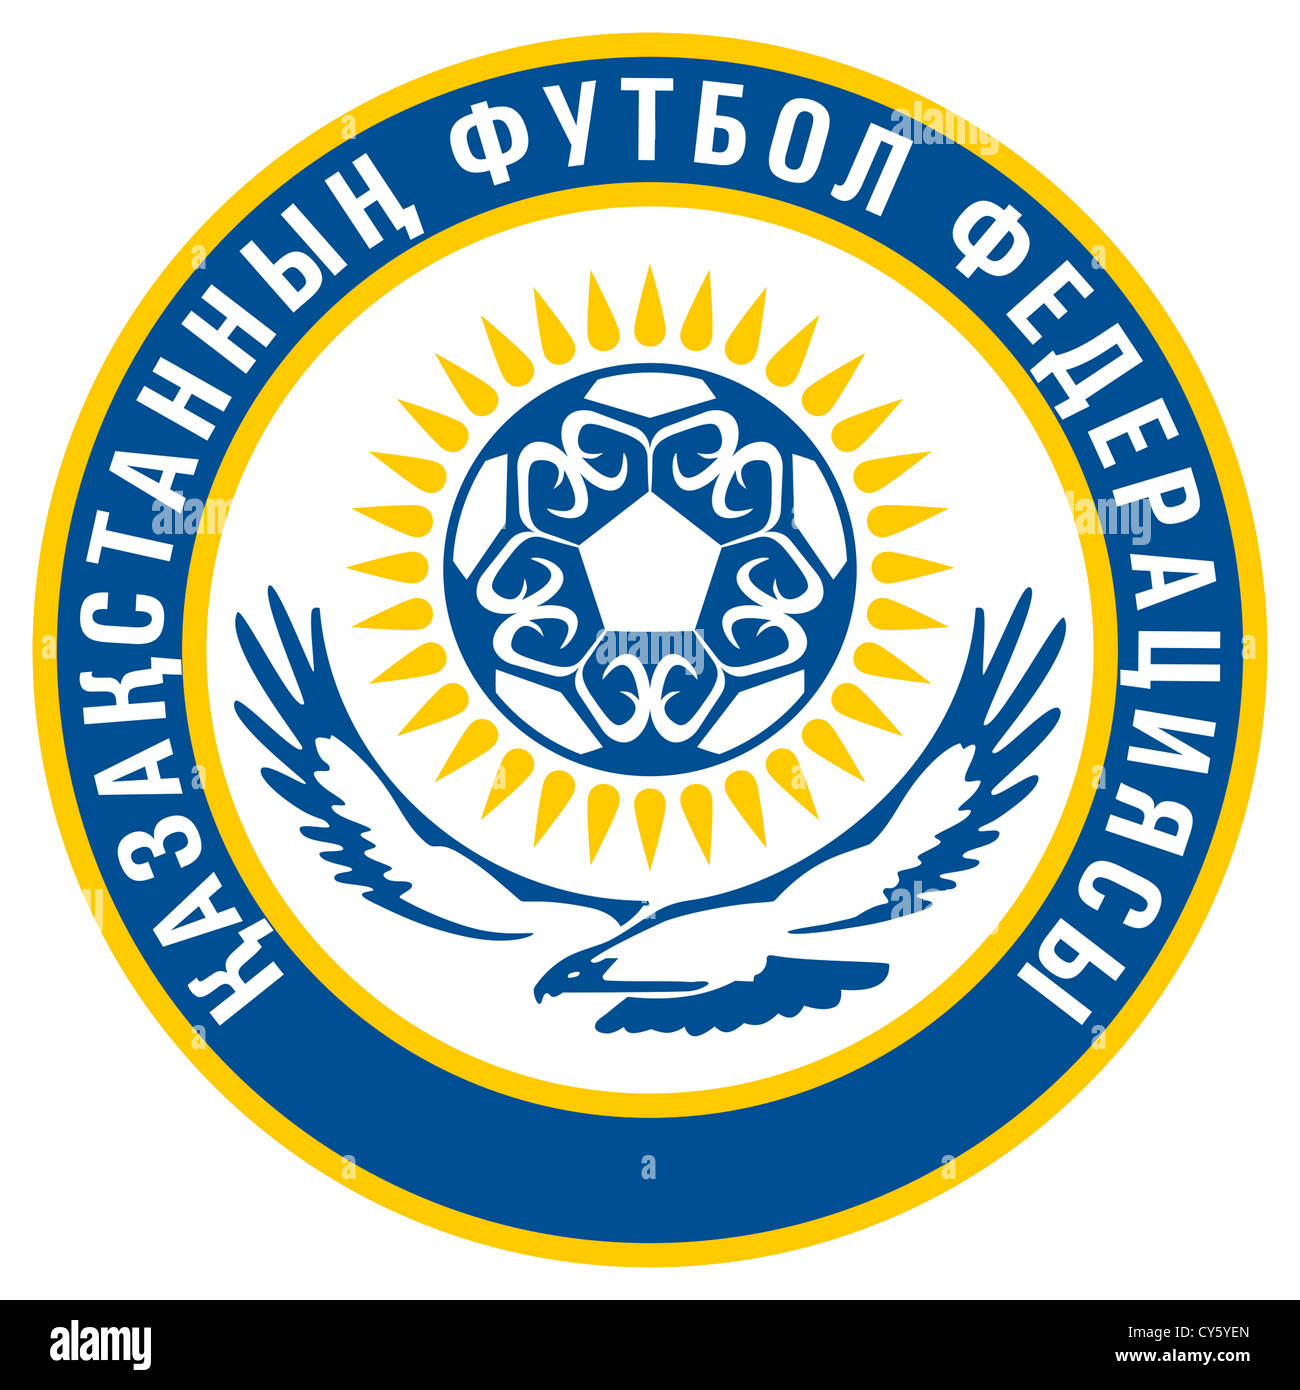 Logo of the Football Federation of Kazakhstan and the National team. - Stock Image